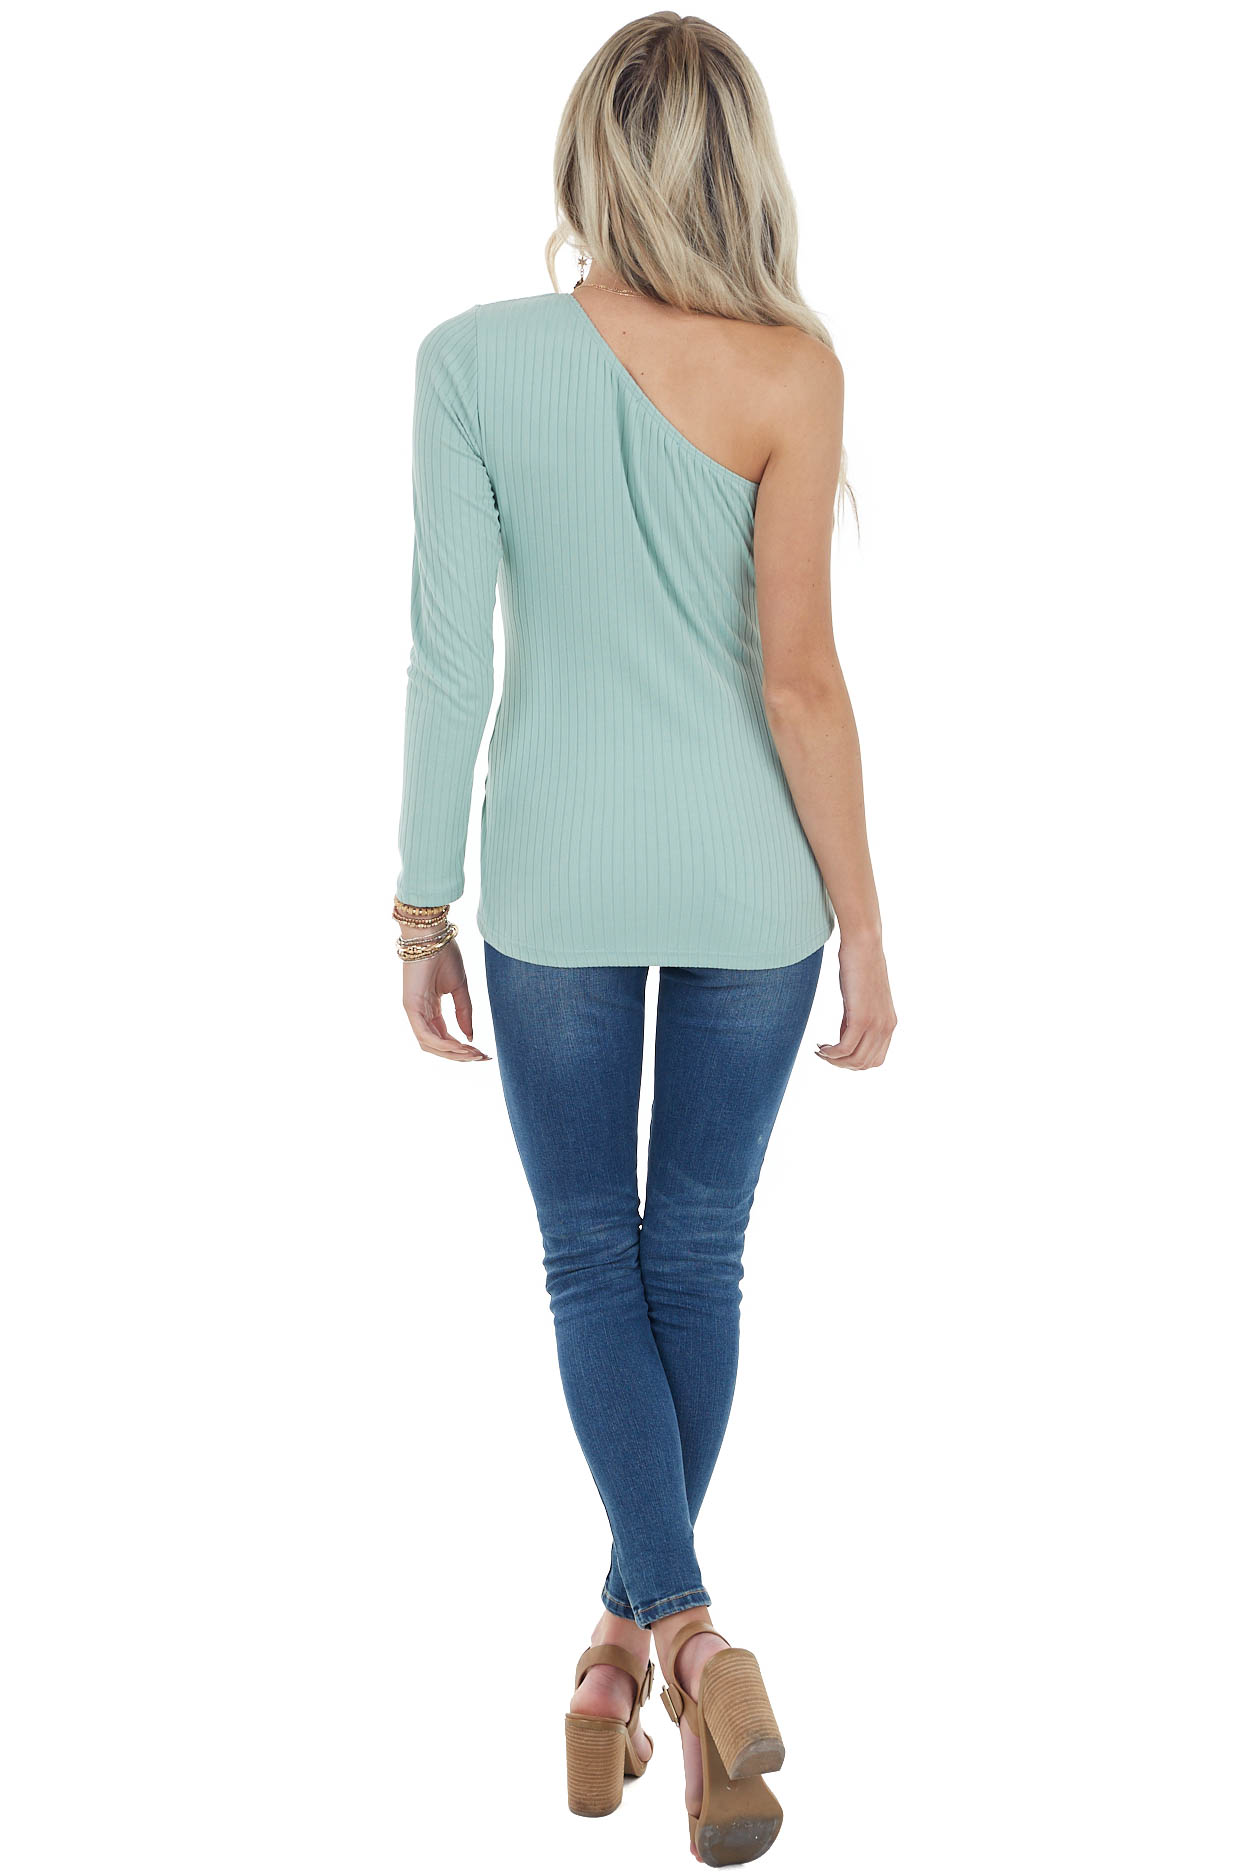 Sage Fitted One Shoulder Stretchy Ribbed Knit Top